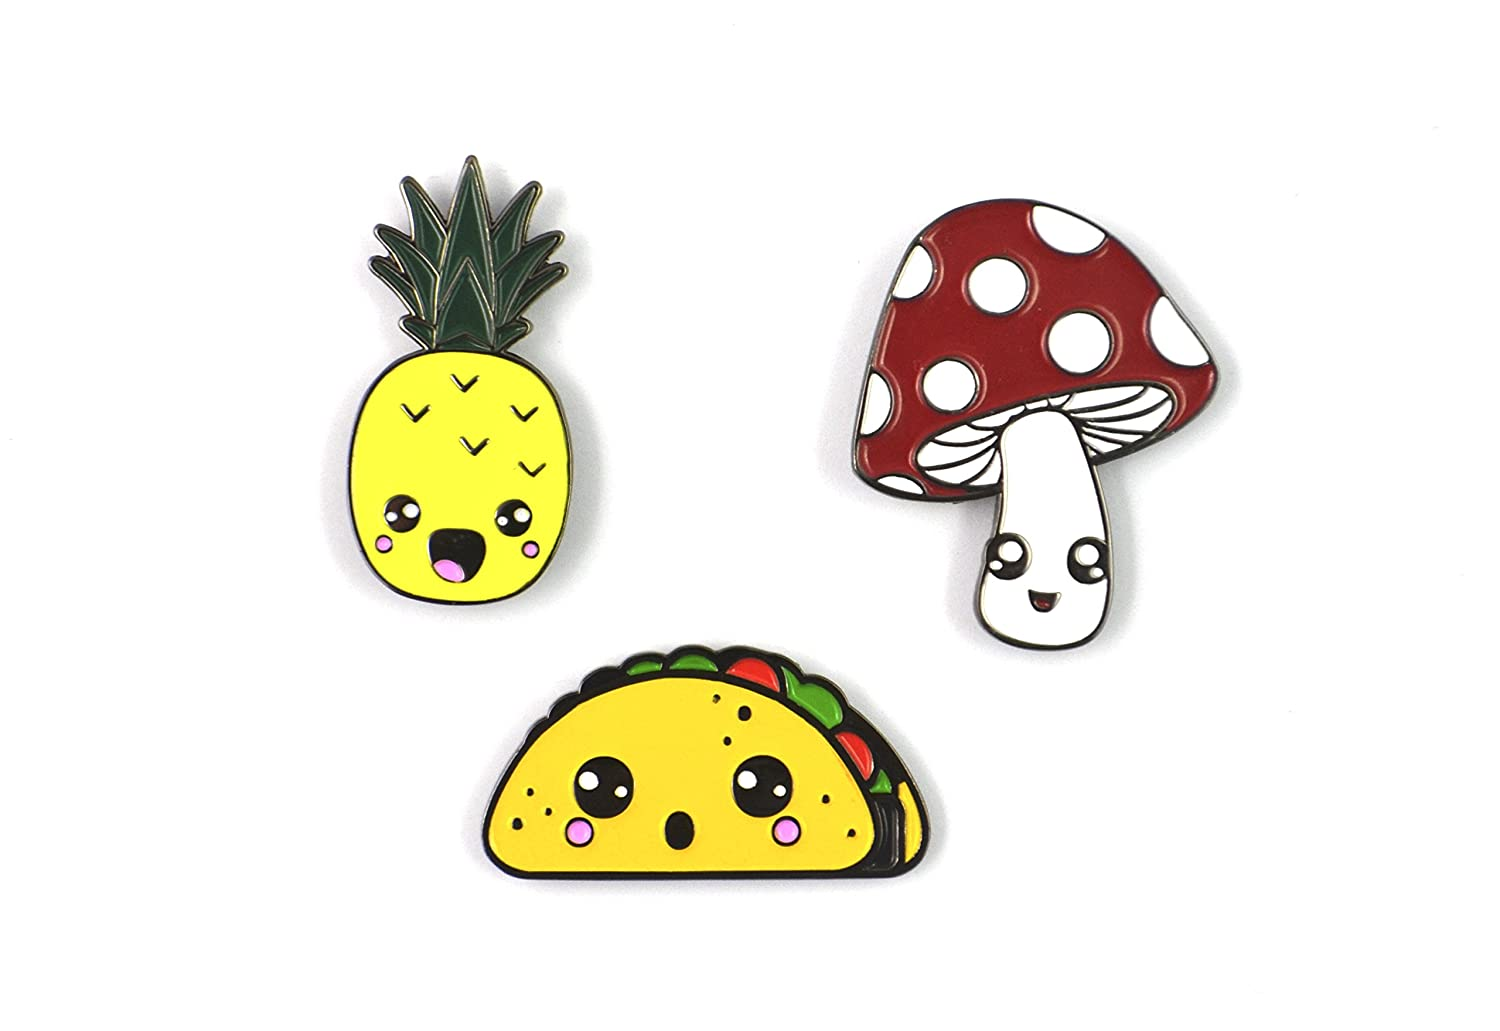 The Kawaii Pin Set Sloth Steady KawaiiSet